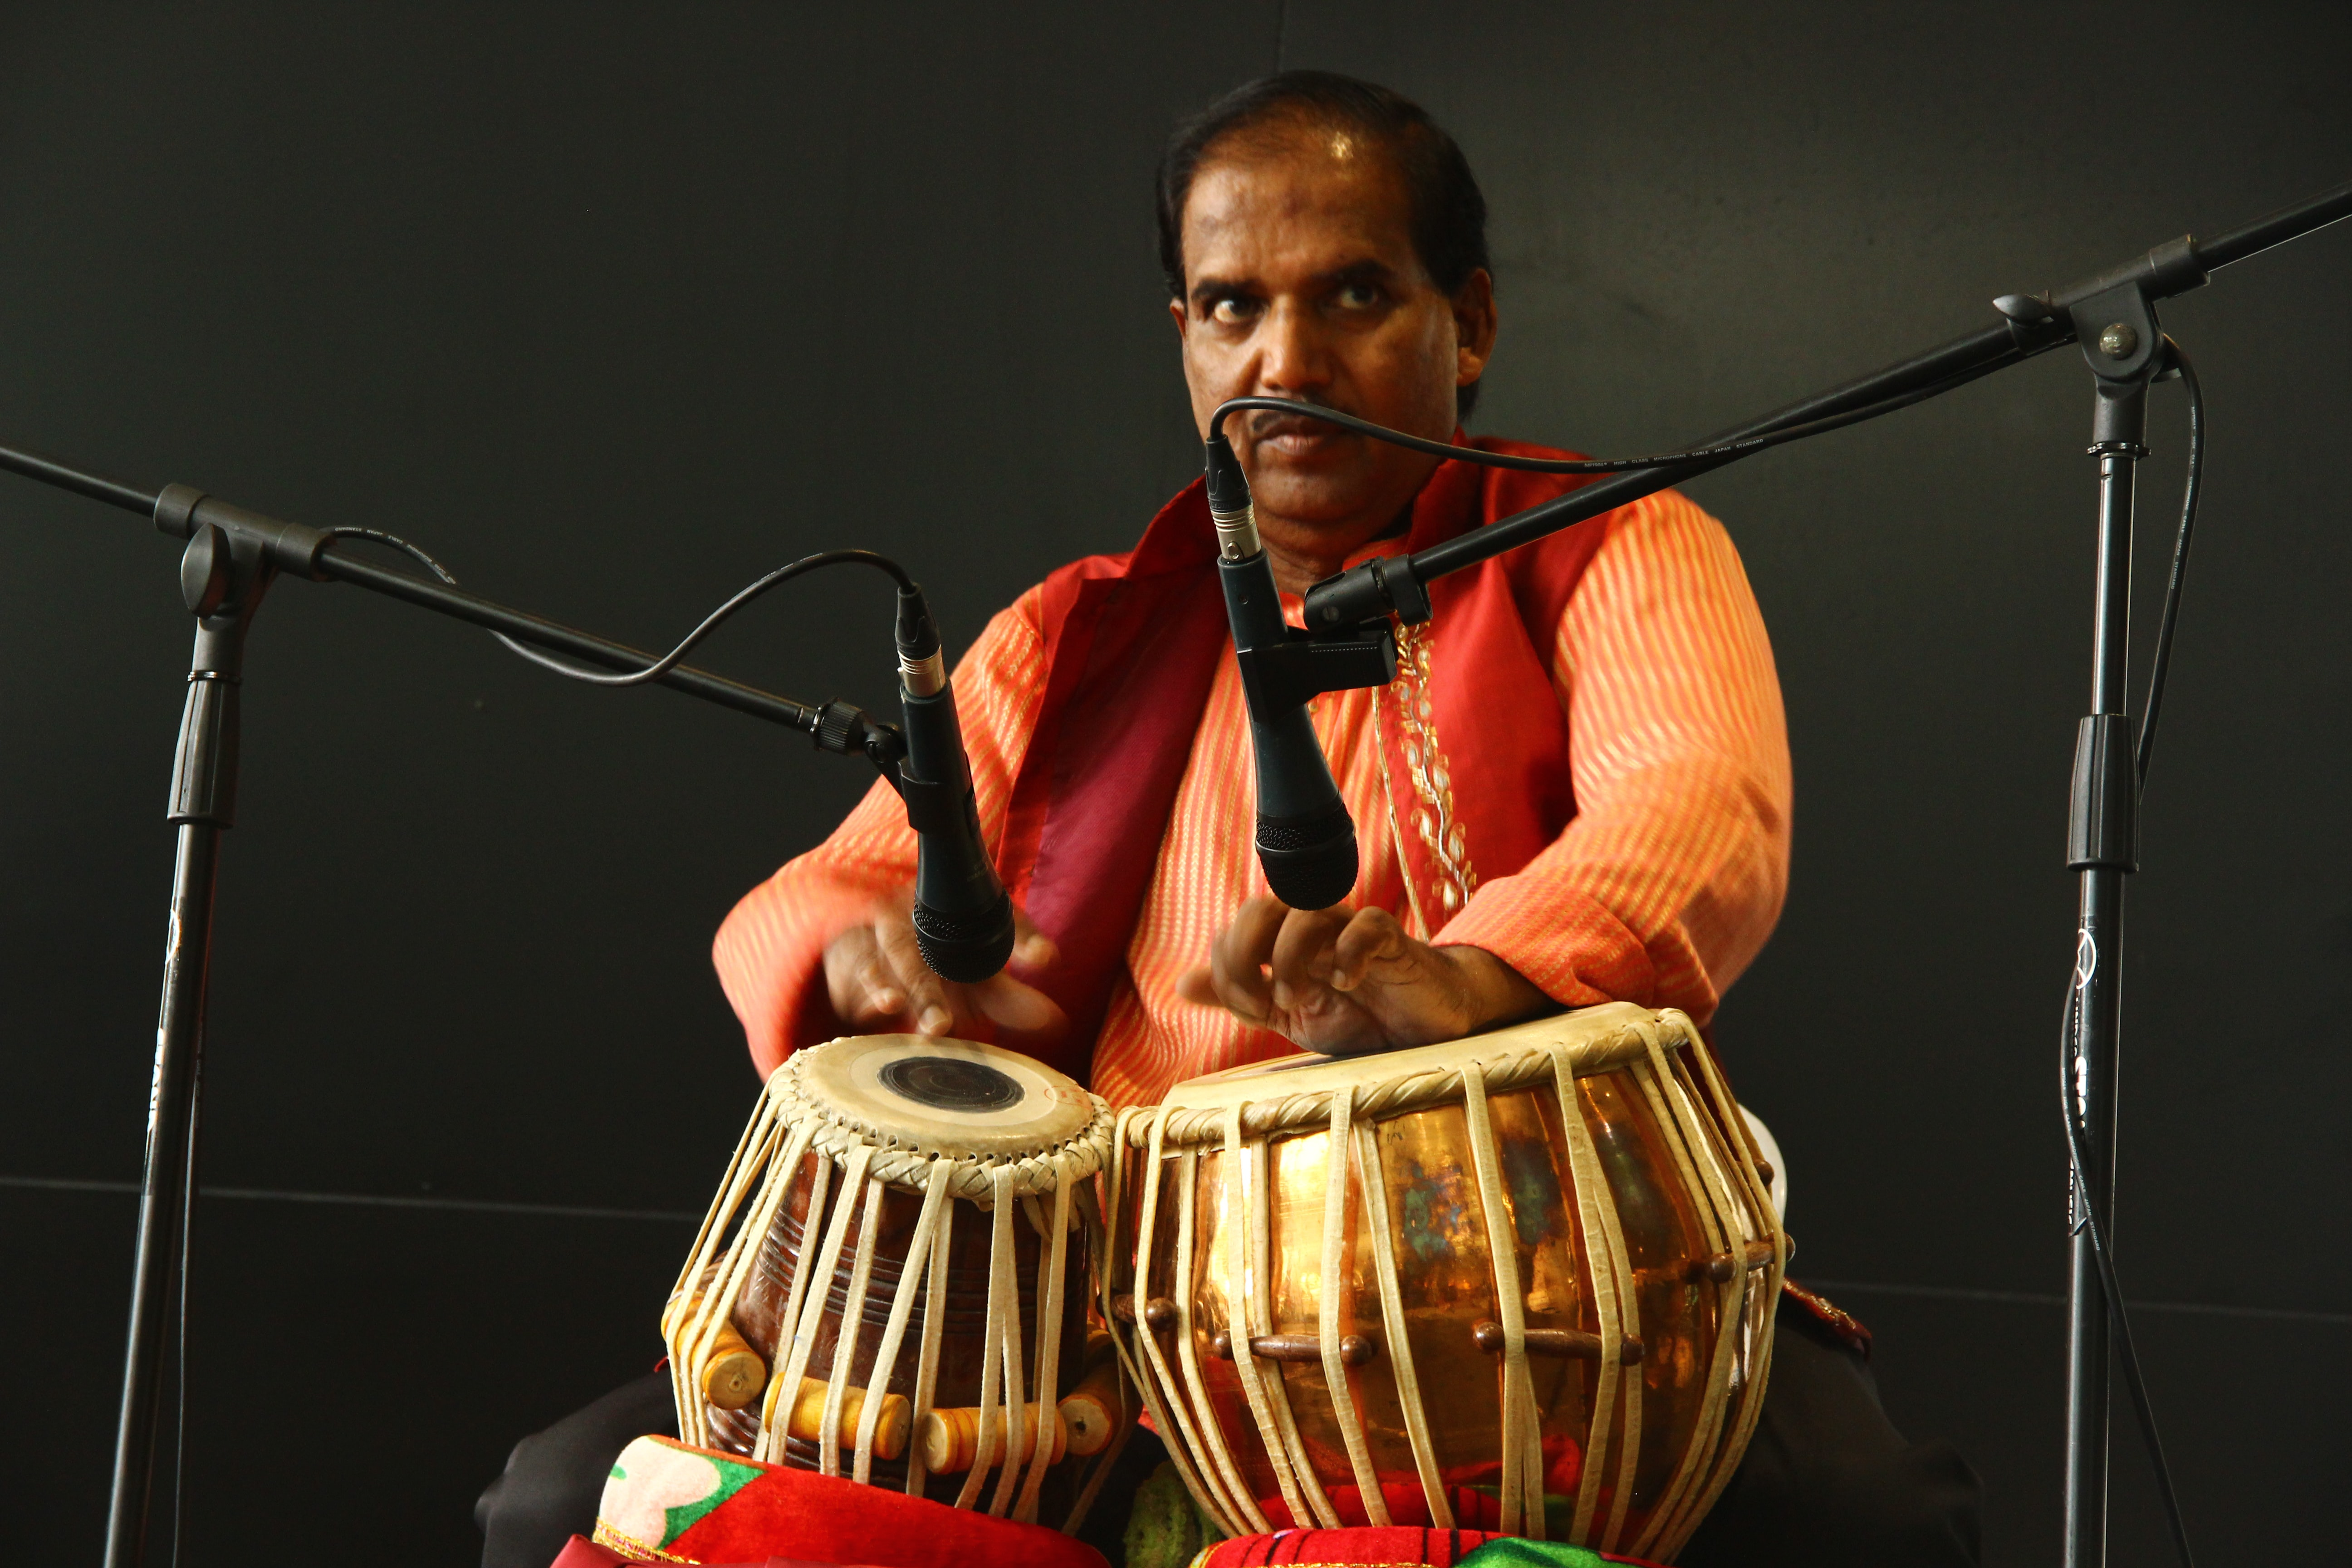 man playing a drum instrument